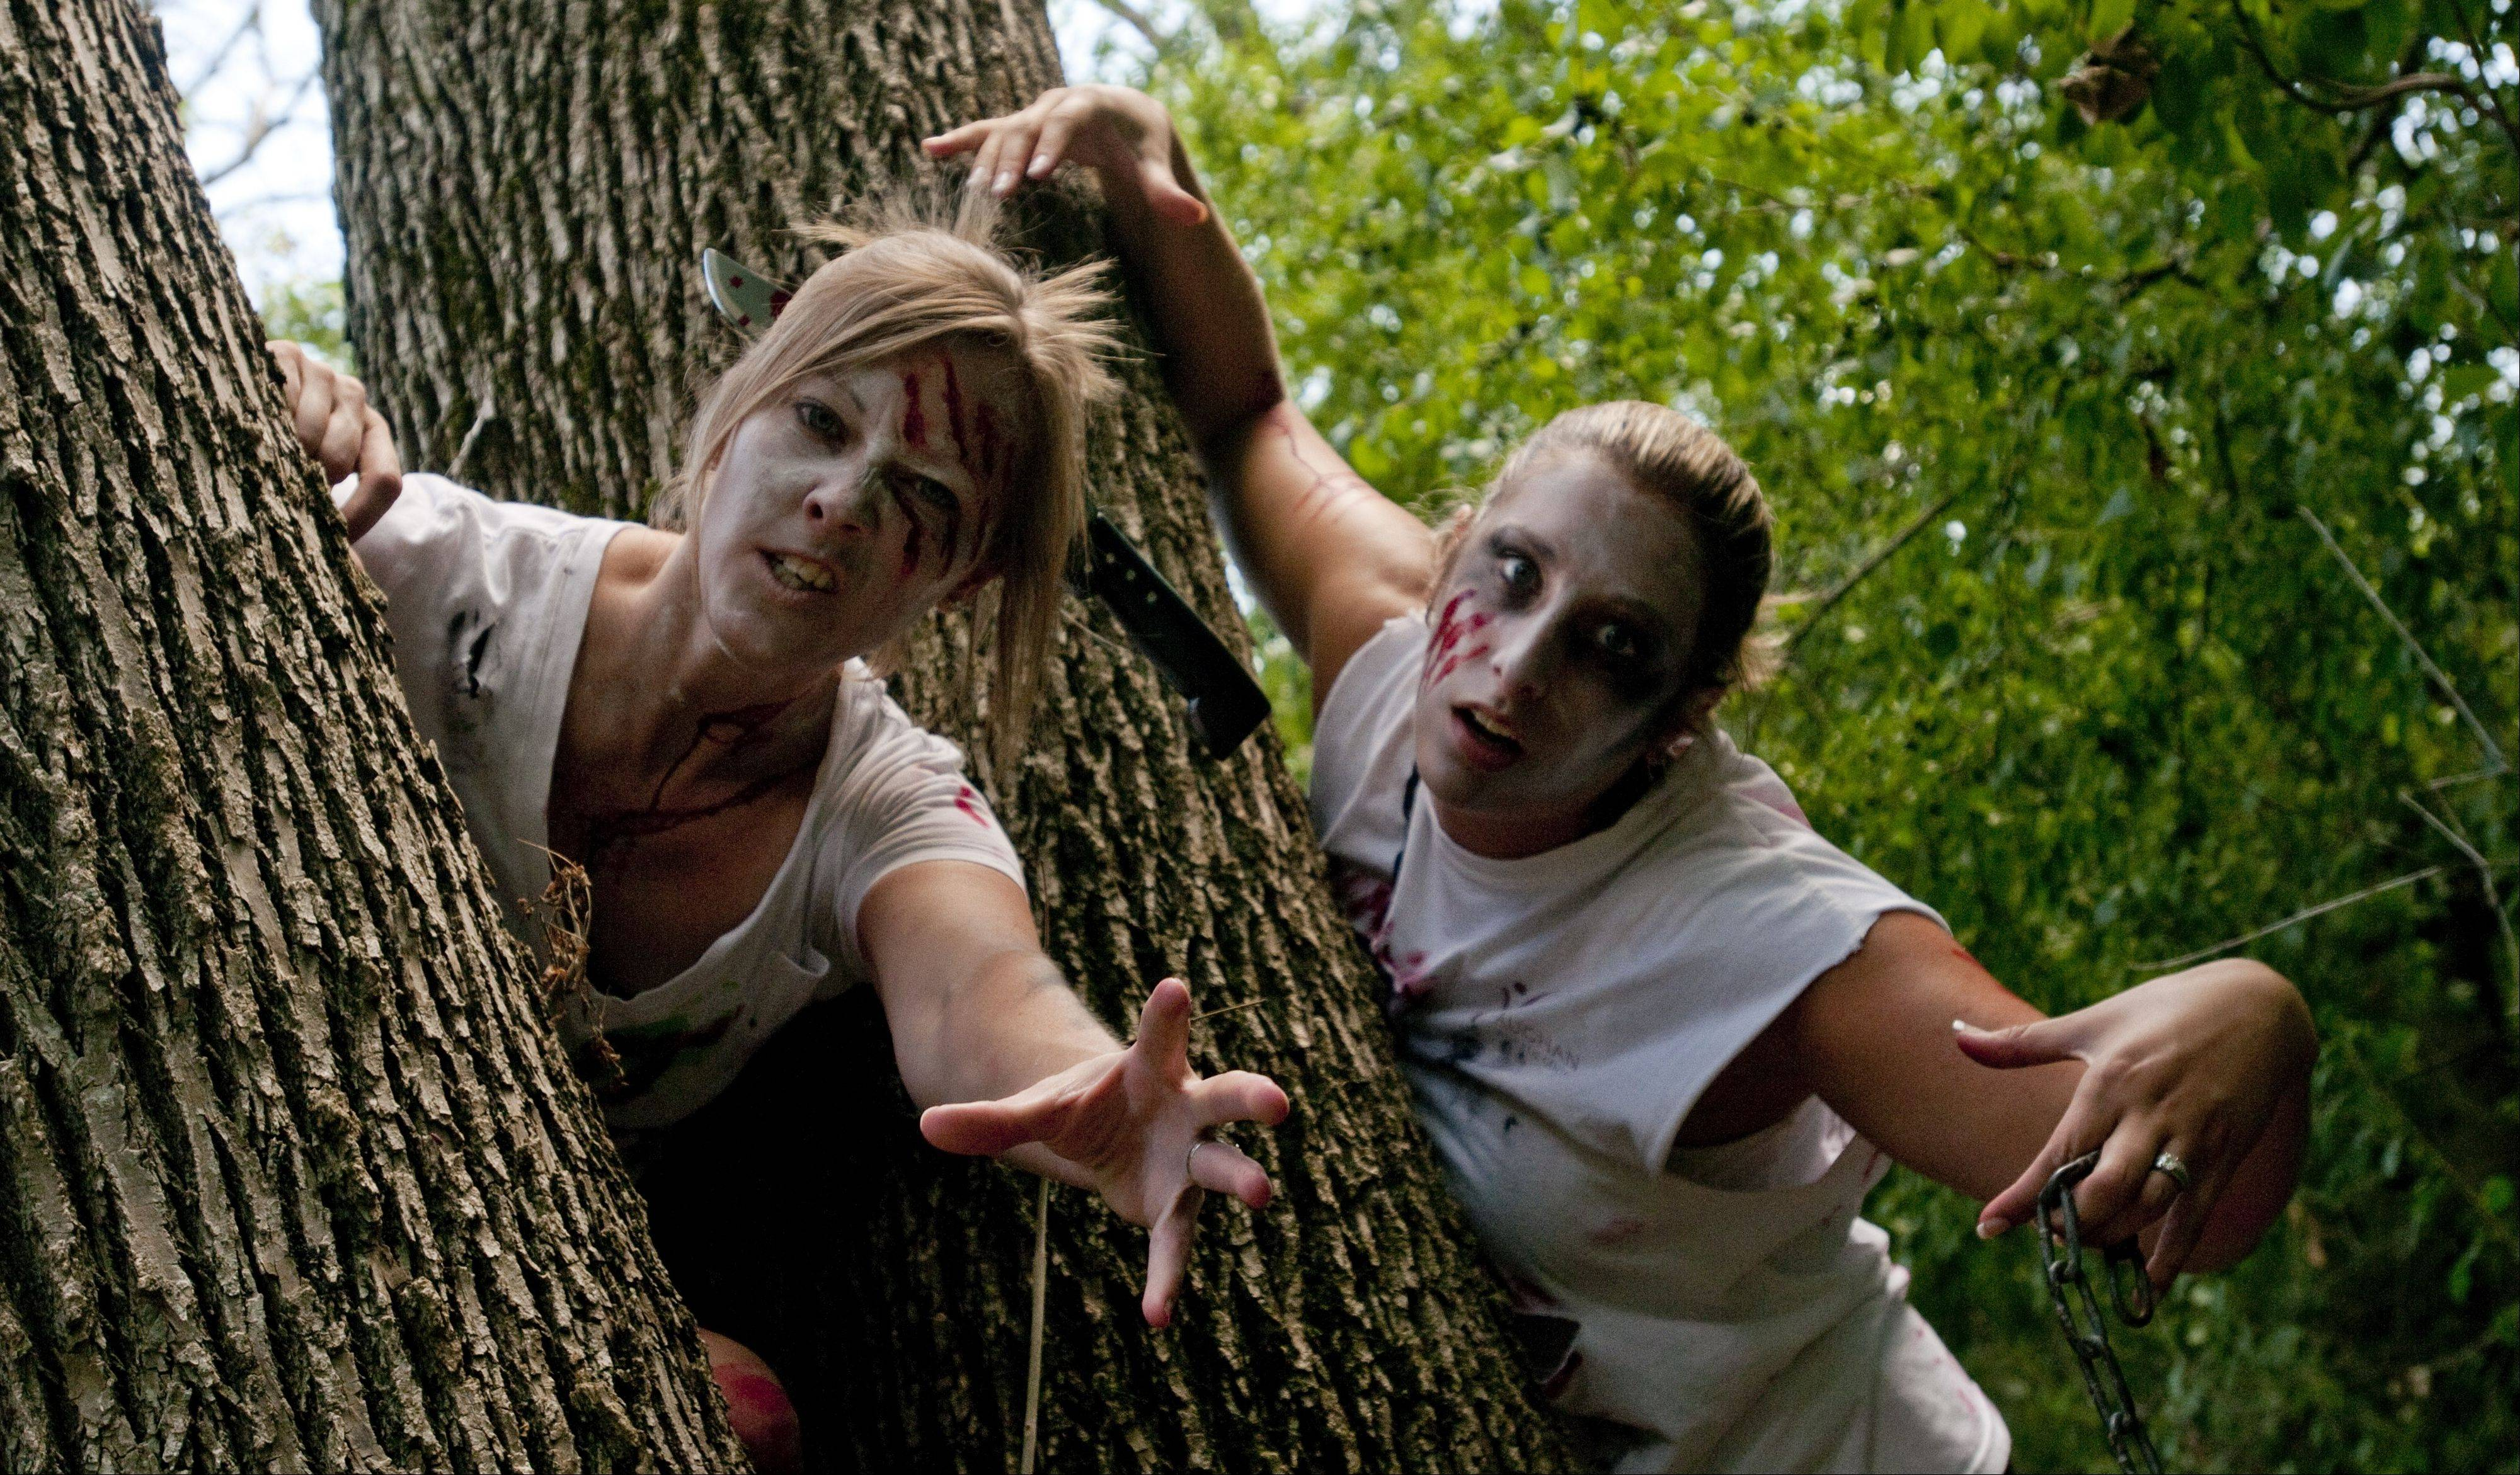 Zombie participants in the Fox Valley Park District's Zombie Invasion 5K will hide behind trees and attempt to capture flag football flags from runners striving to reach the finish line without being tracked down by the undead. The race can accommodate up to 300 participants including zombies and runners.